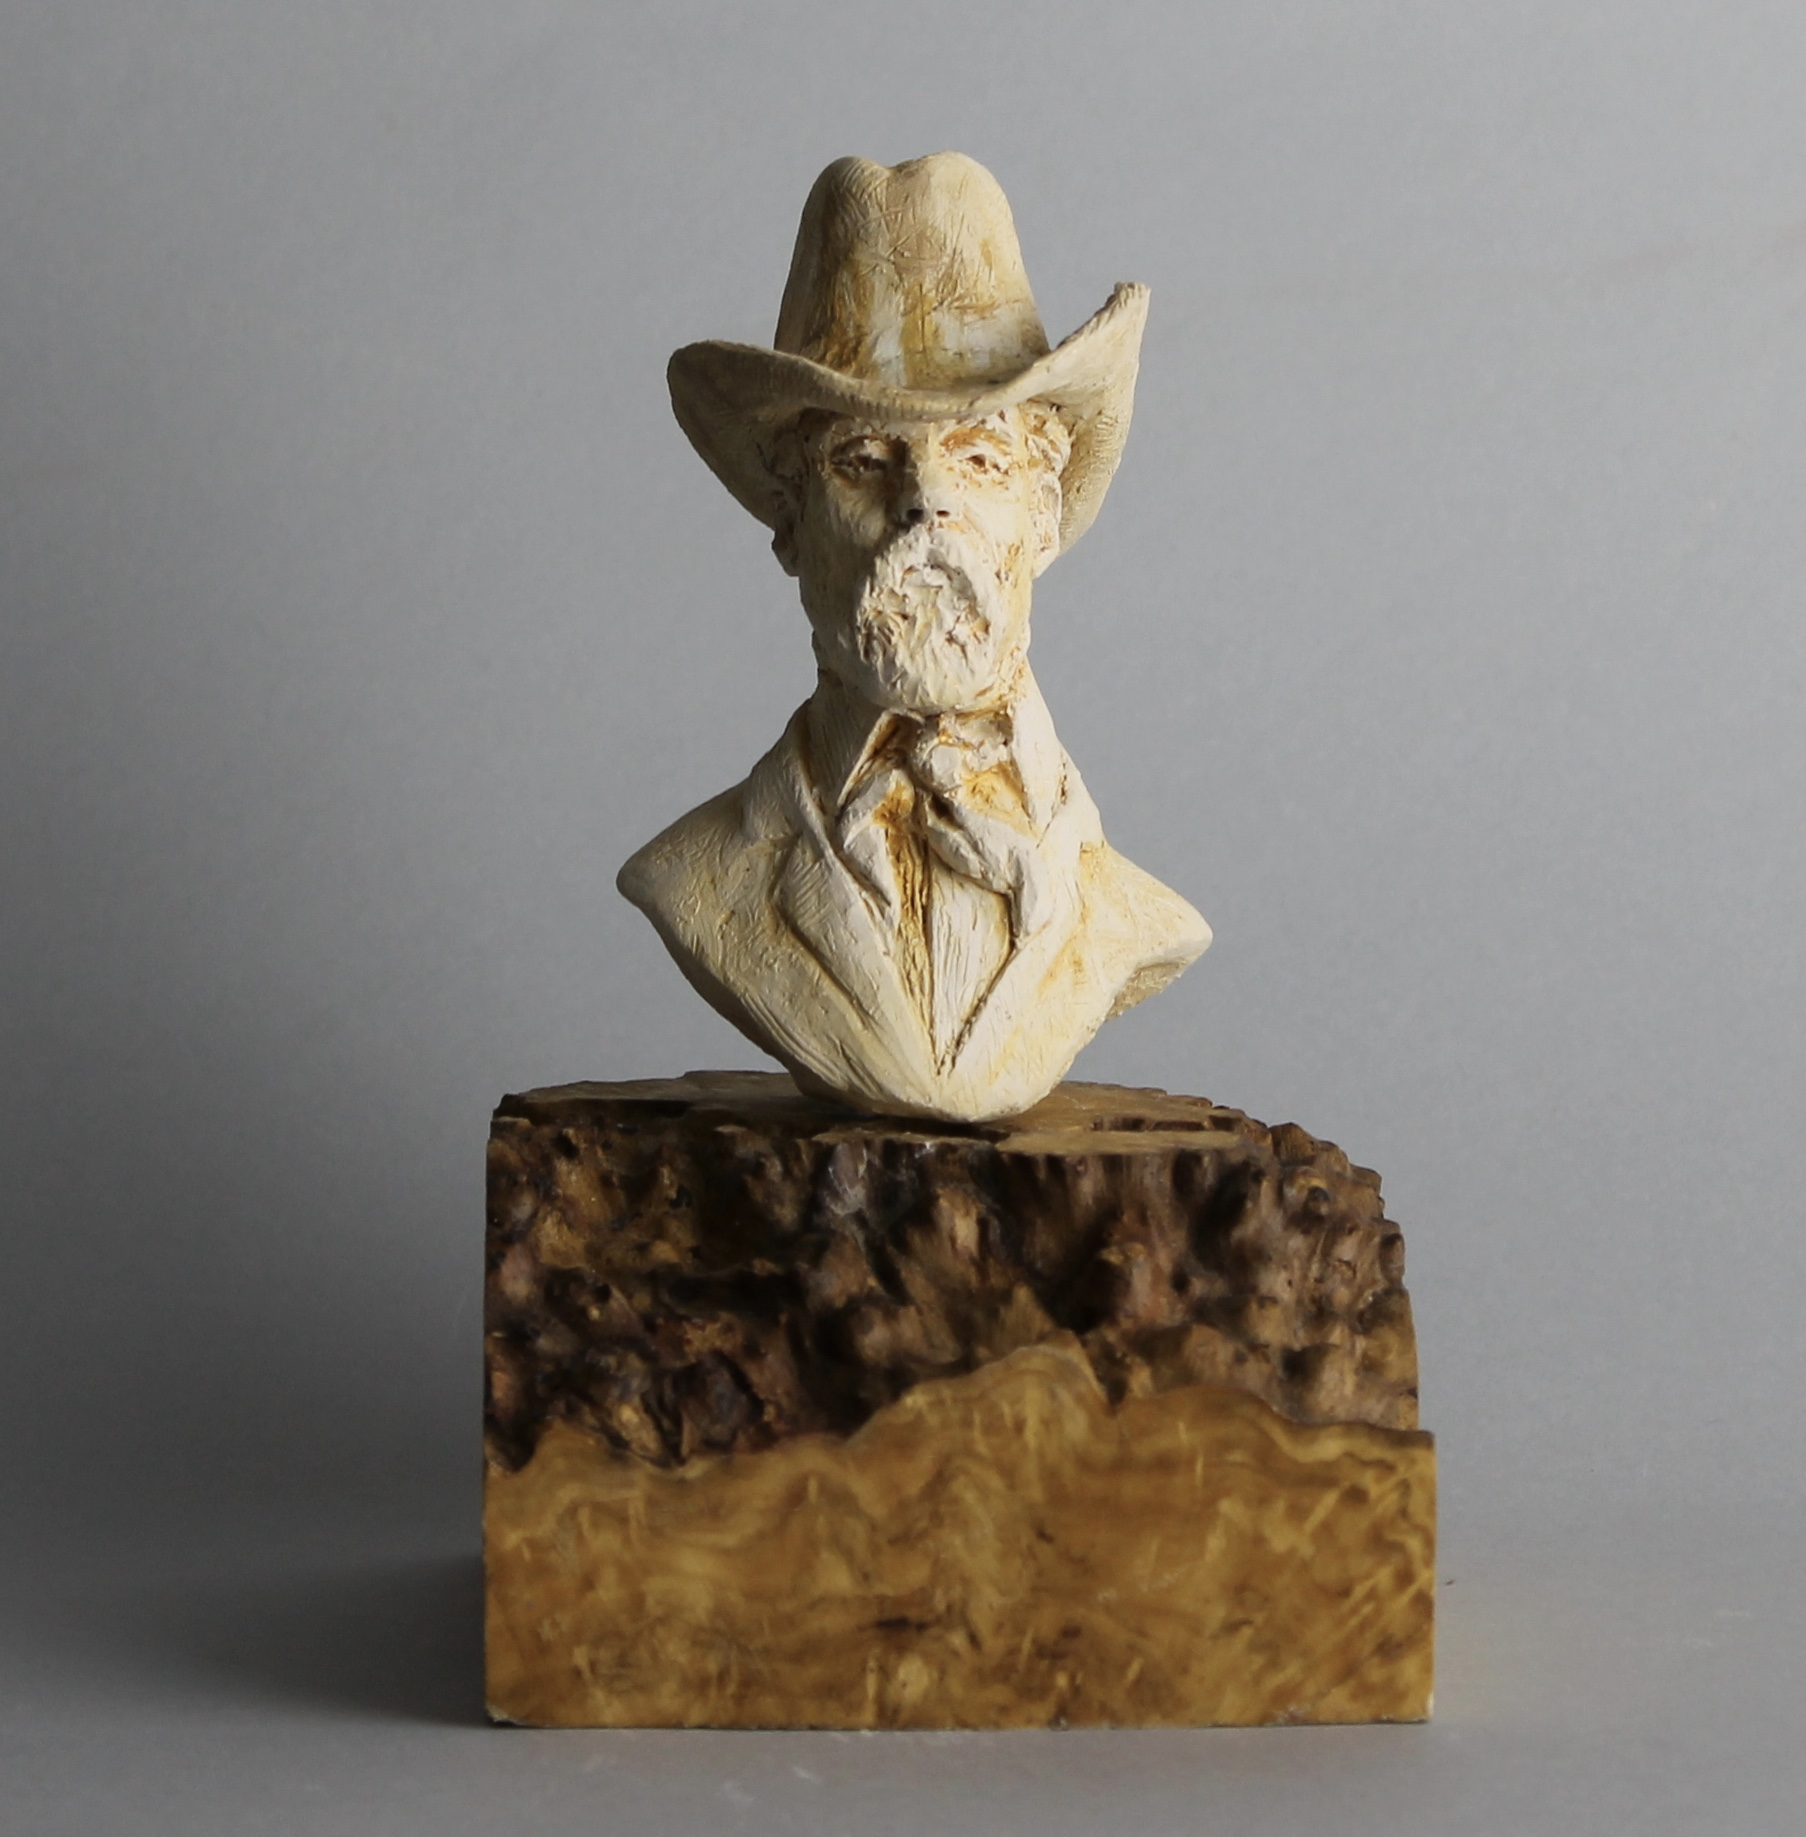 Clay Cowboy I, fired and glazed